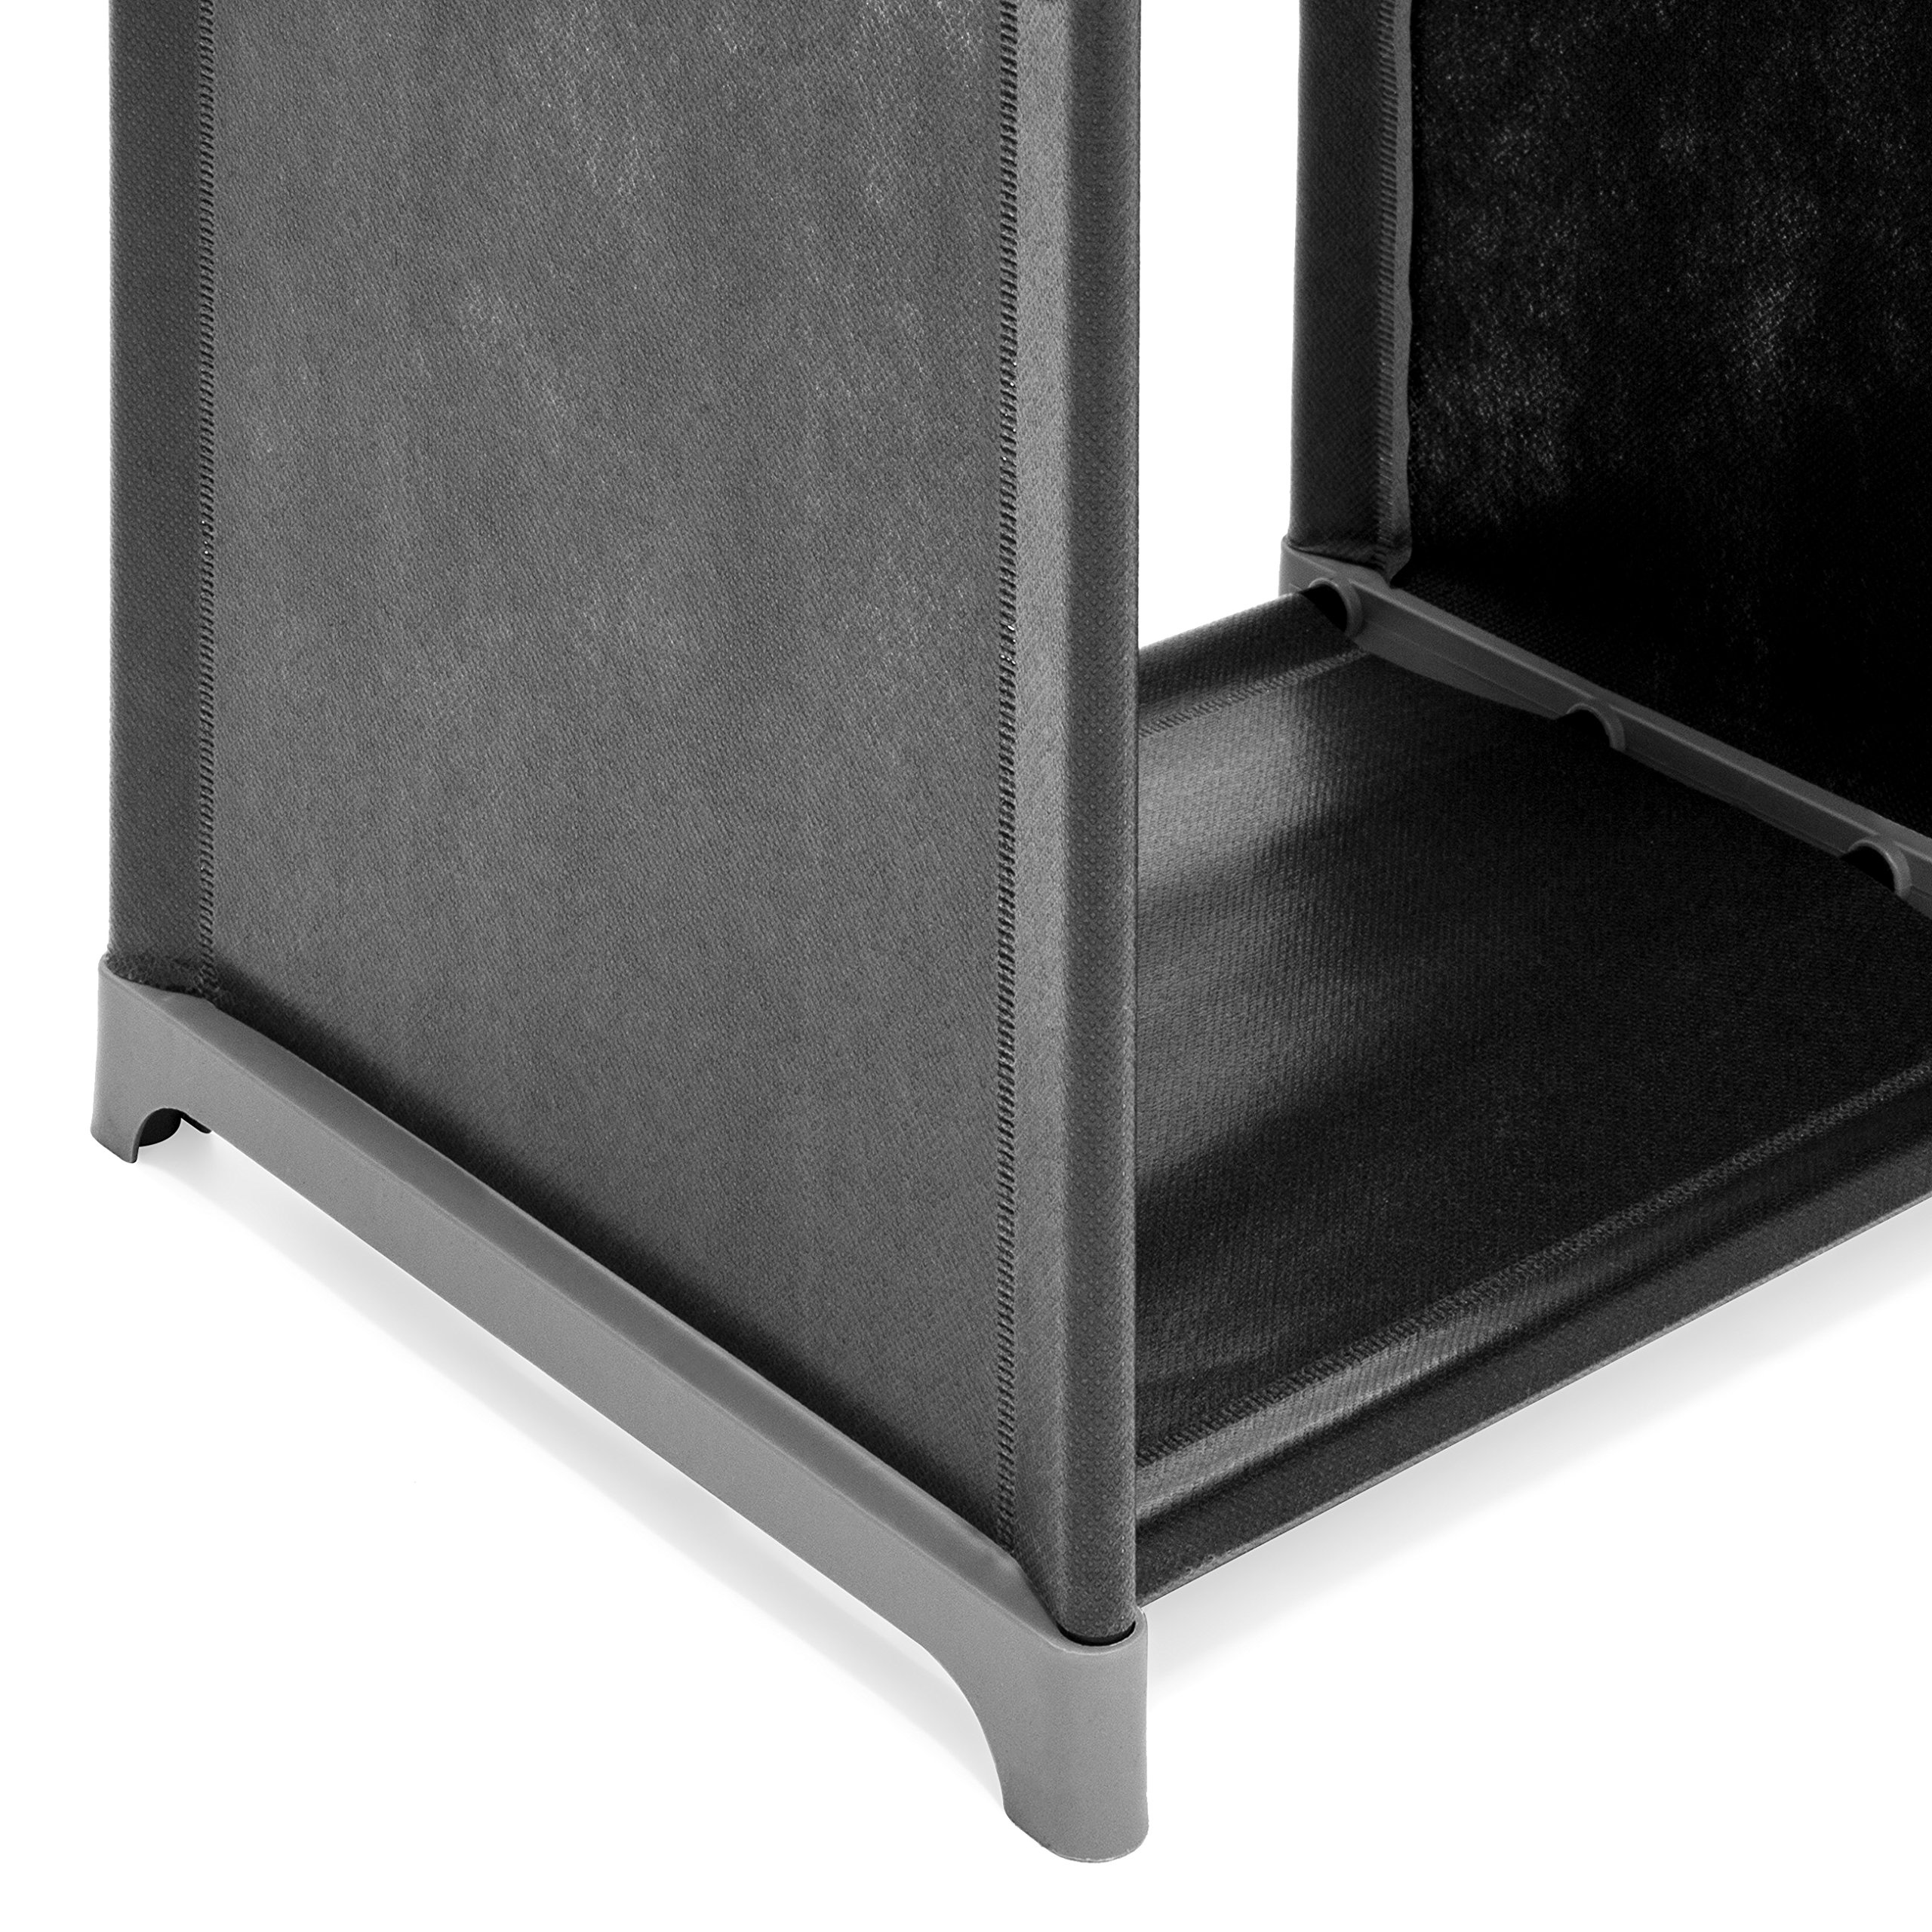 Best Choice Products 6-Drawer Multi-Purpose Shelving Cubby Storage Cabinet (Black) by Best Choice Products (Image #4)